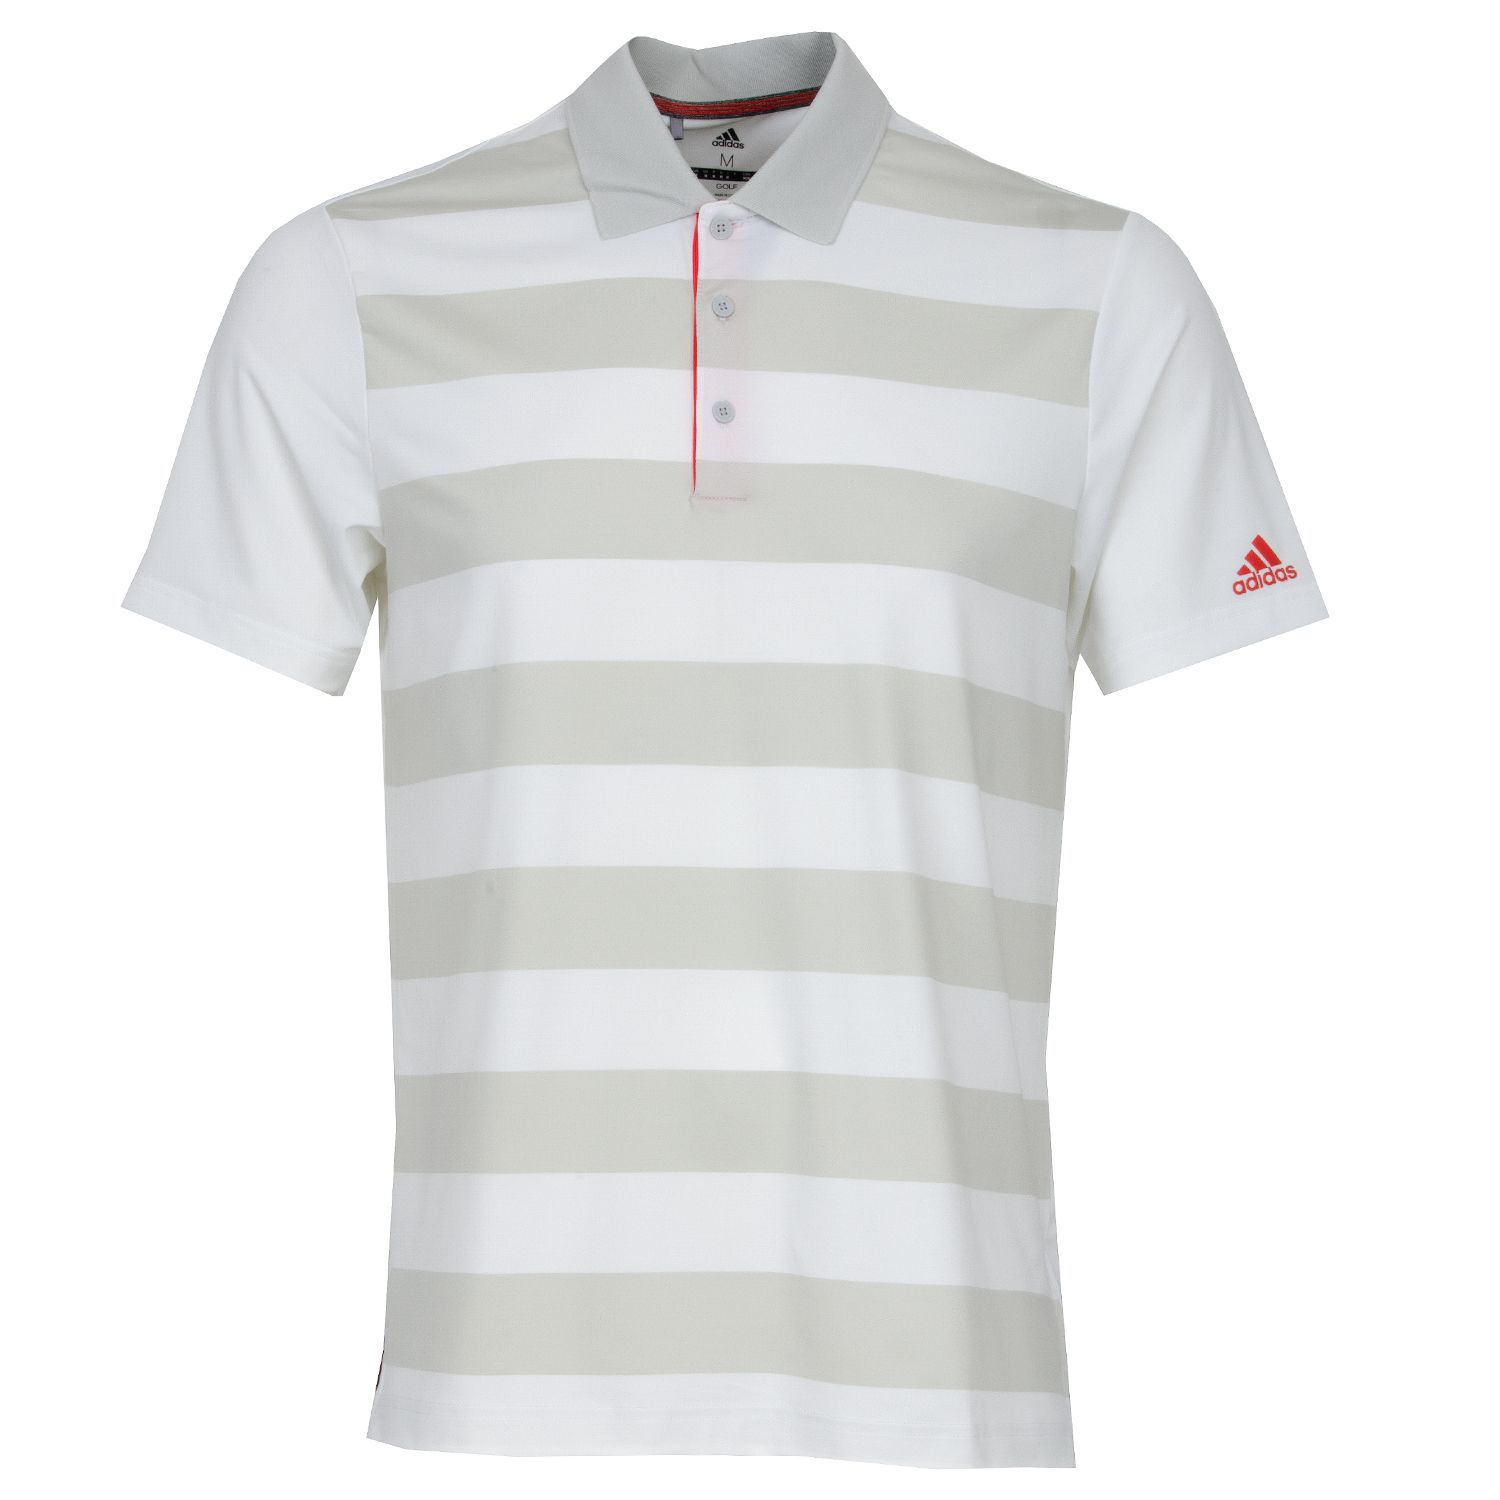 reputable site 0b99d 4c403 adidas Ultimate 365 Rugby Polo Shirt White Grey   Scottsdale Golf